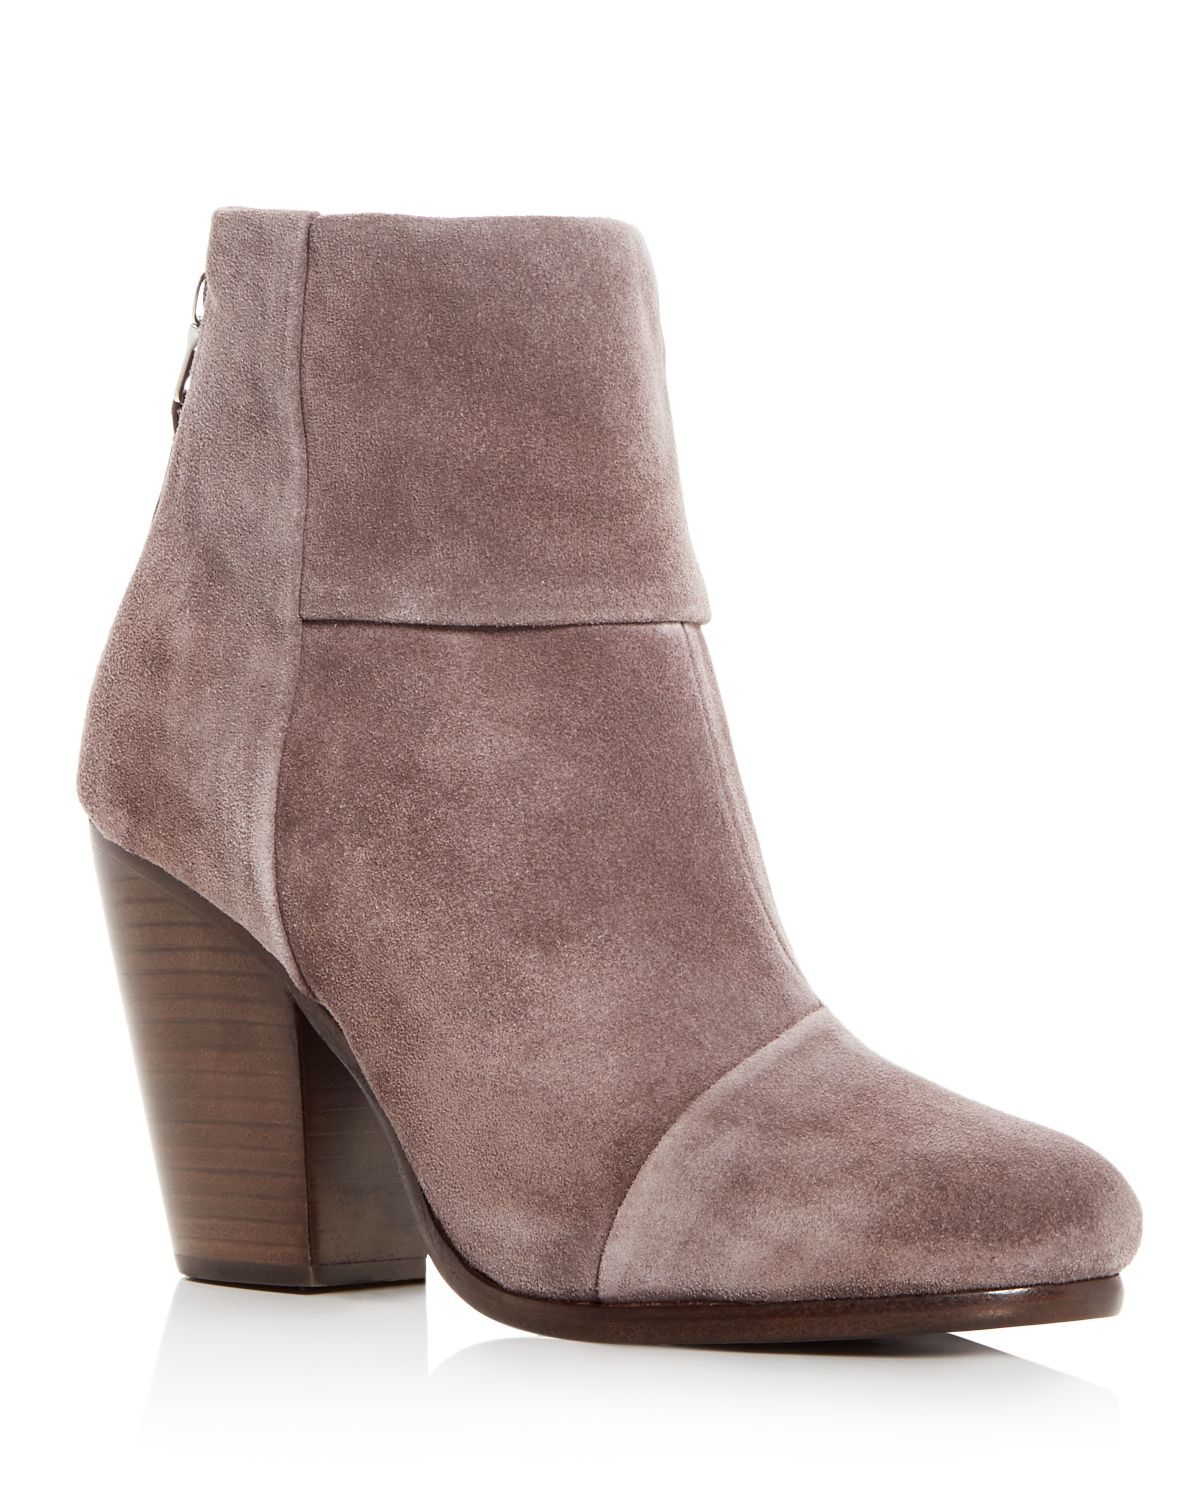 RAG&BONE Women's Newbury Suede Cap Toe High-Heel Booties